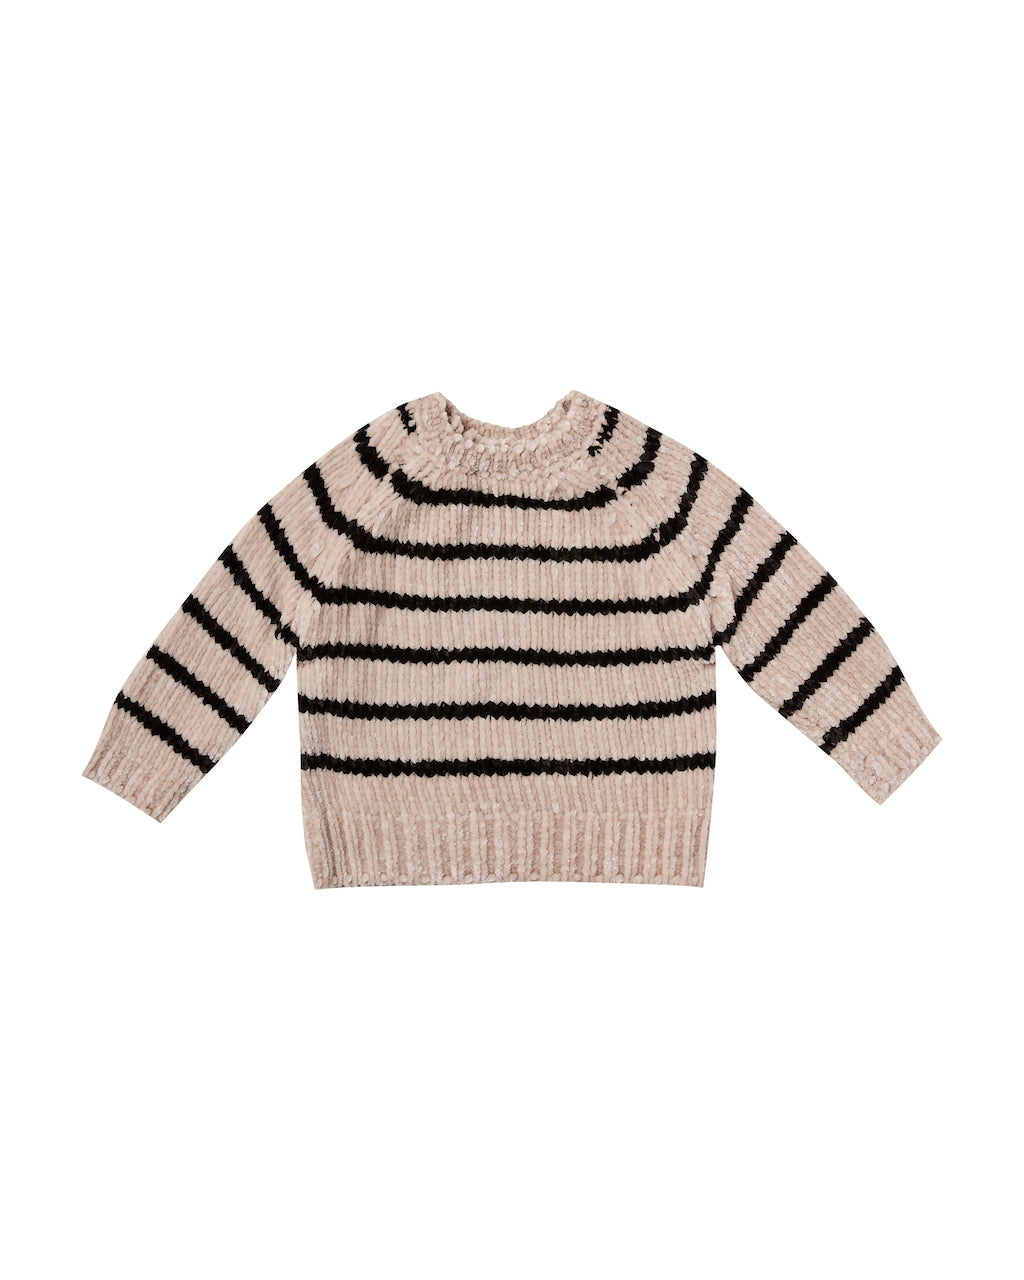 Rylee & Cru Striped Chenille Sweater in Oat